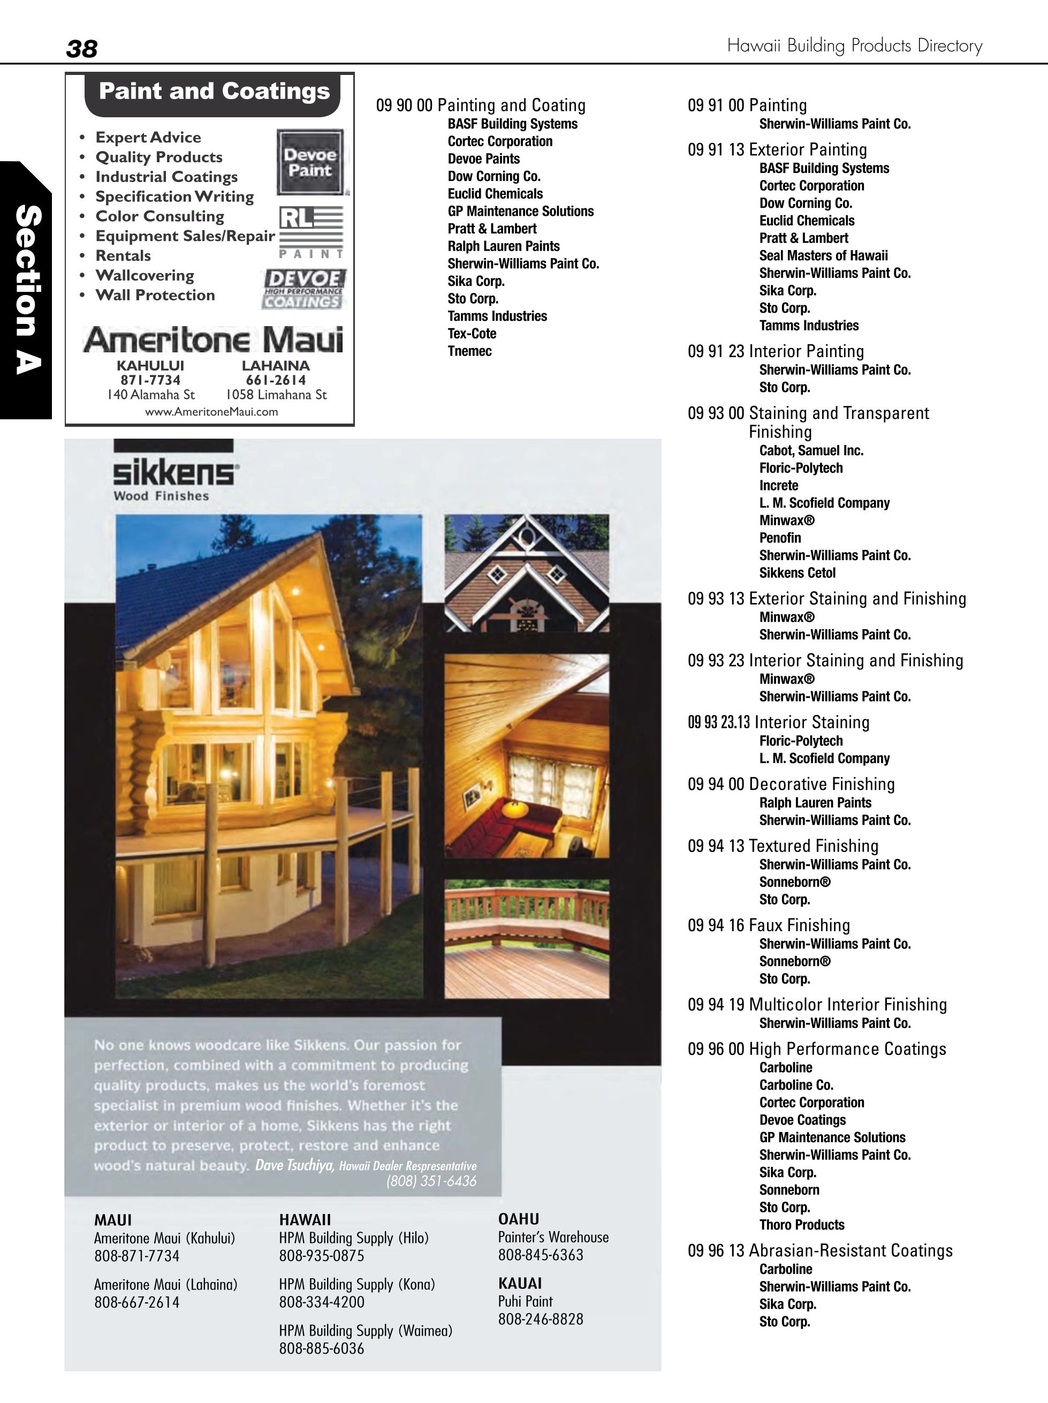 Hawaii Building Products Directory 2012-2013